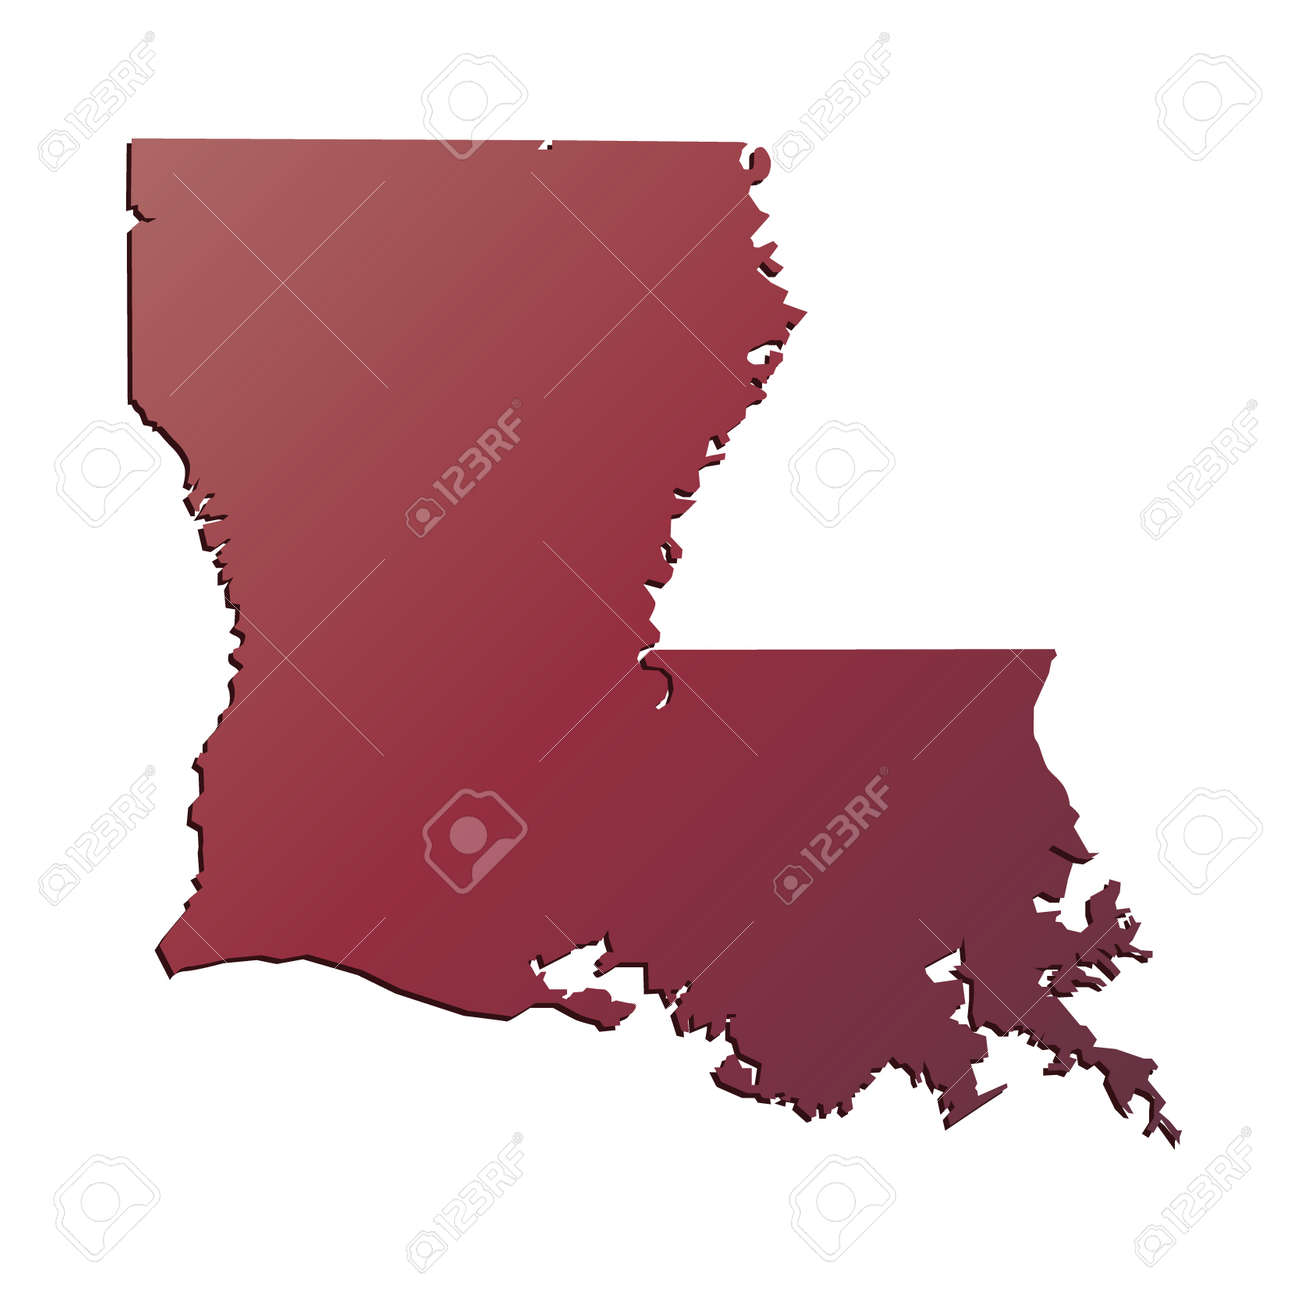 Louisiana State Map Road Map Of Louisiana - Louisiana on us map